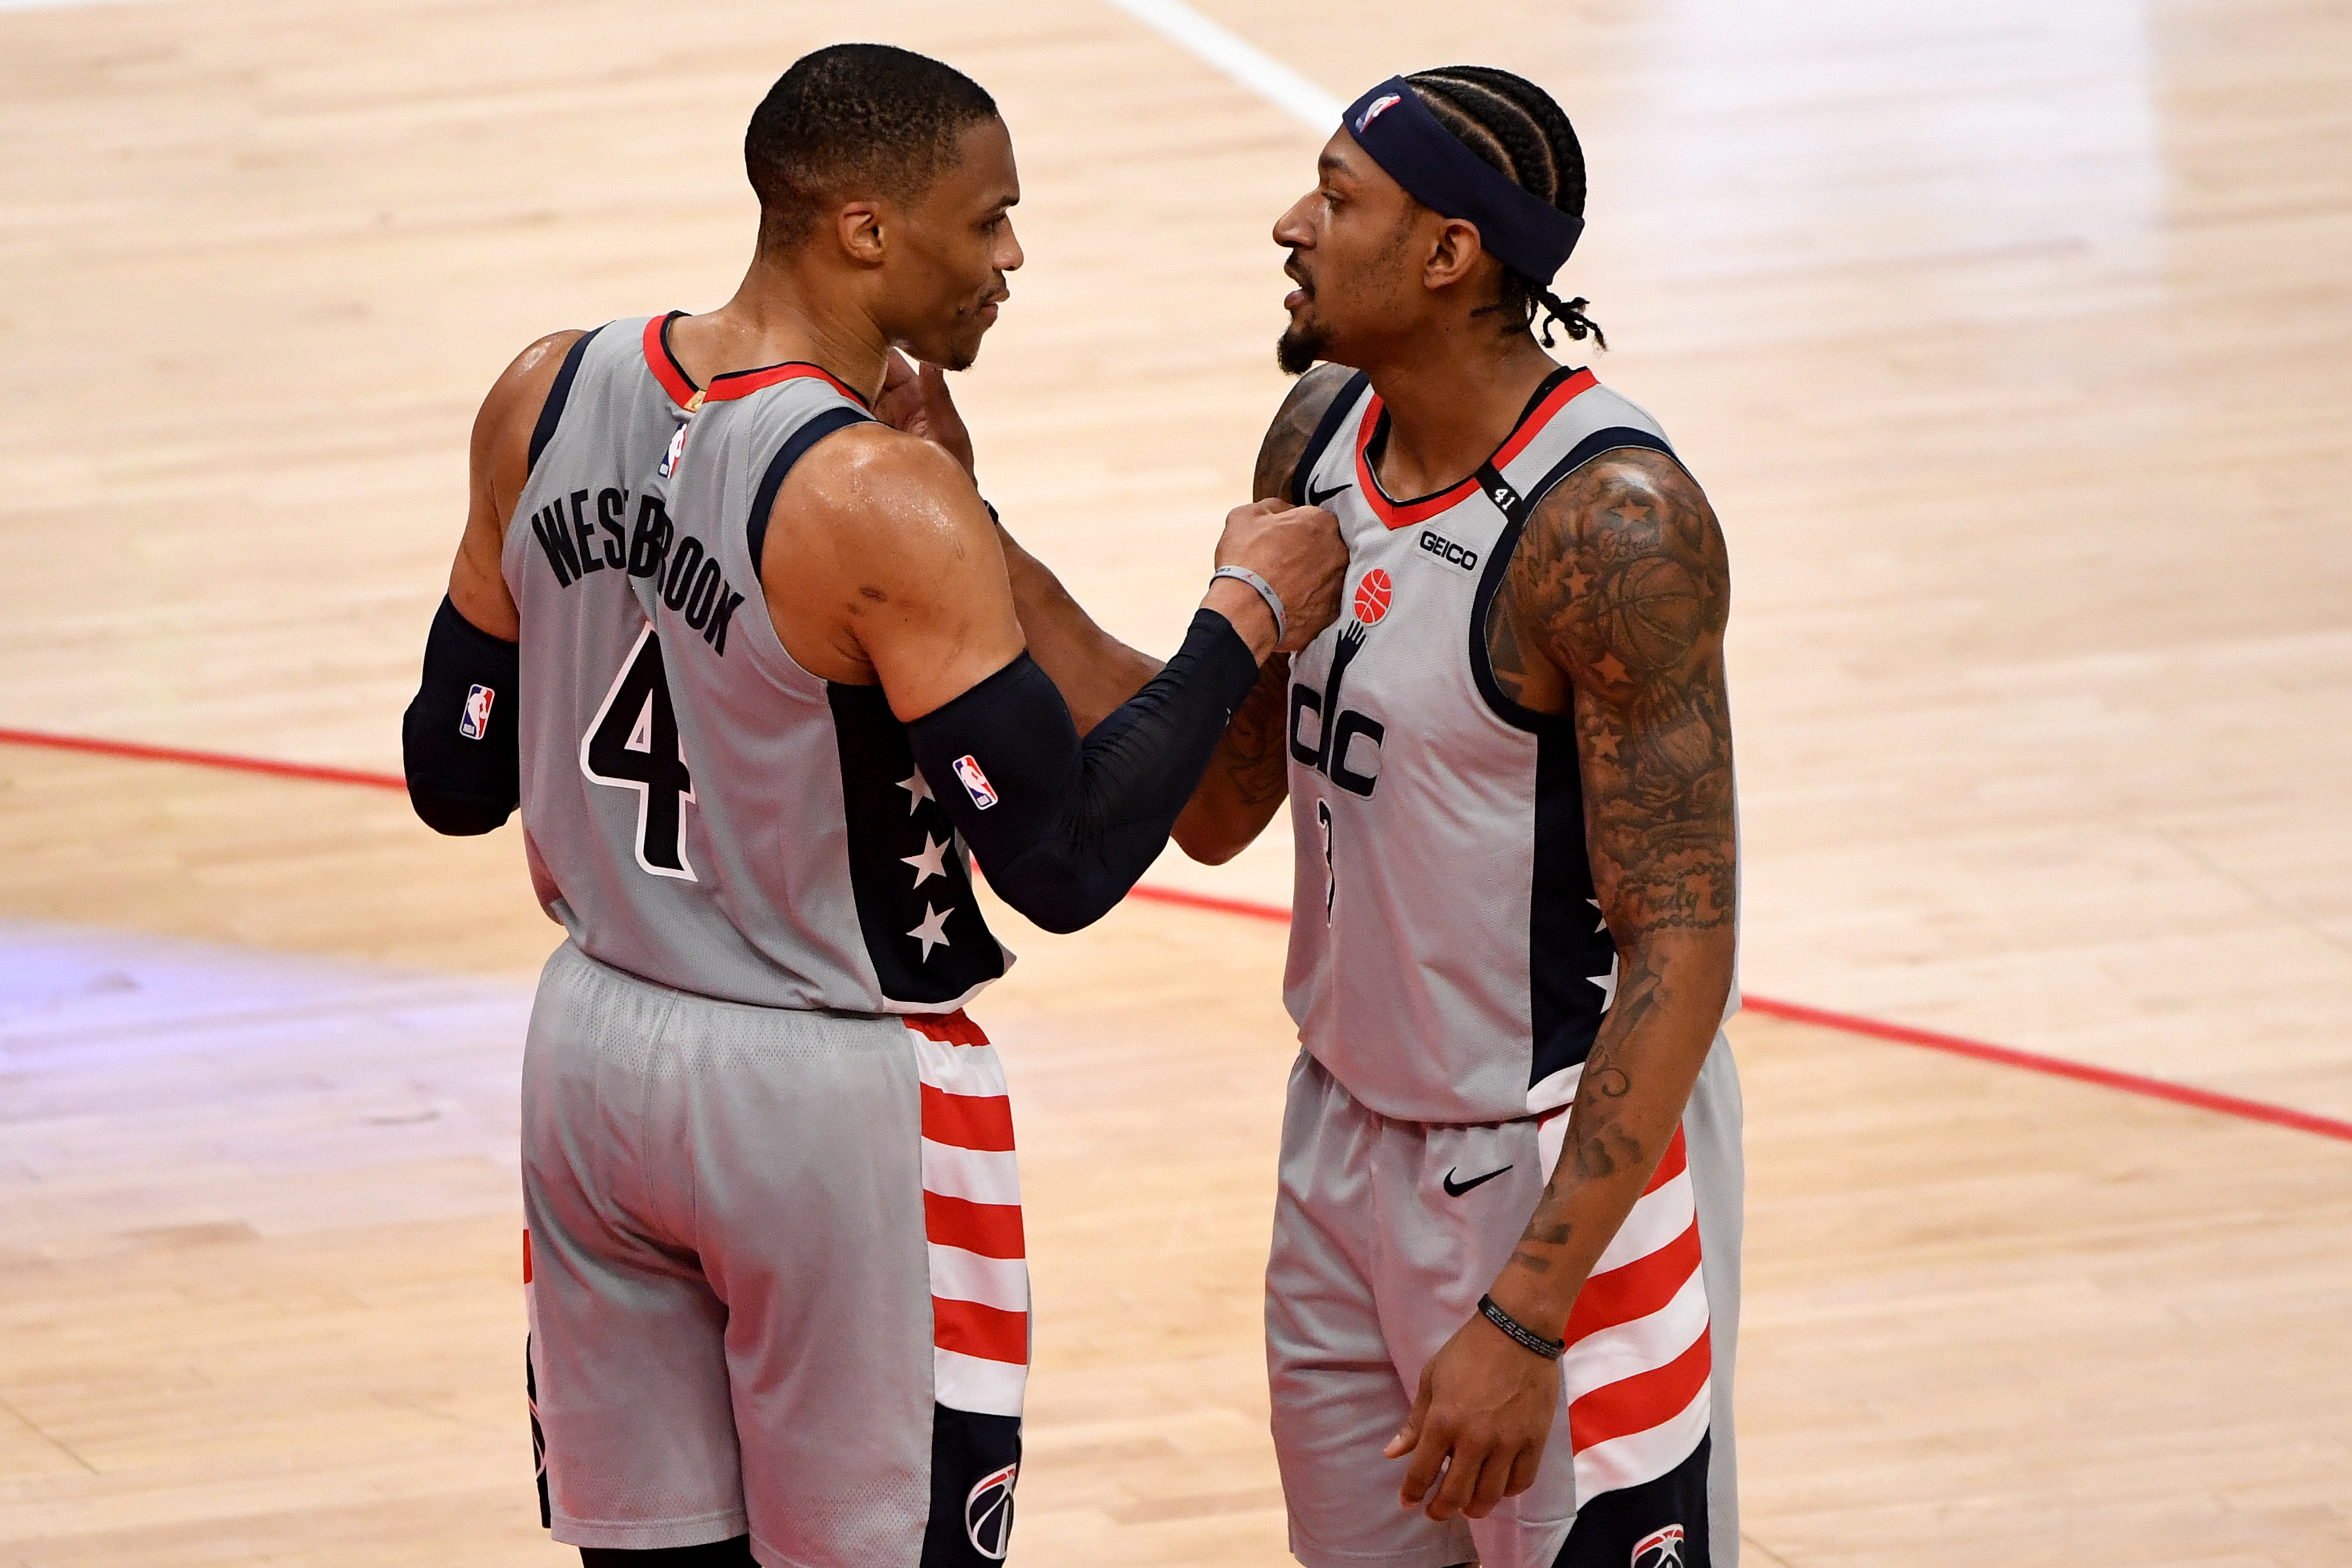 Russell Westbrook and Bradley Beal of the Washington Wizards celebrate after defeating the Charlotte Hornets at Capital One Arena on May 16, 2021 in Washington, DC.